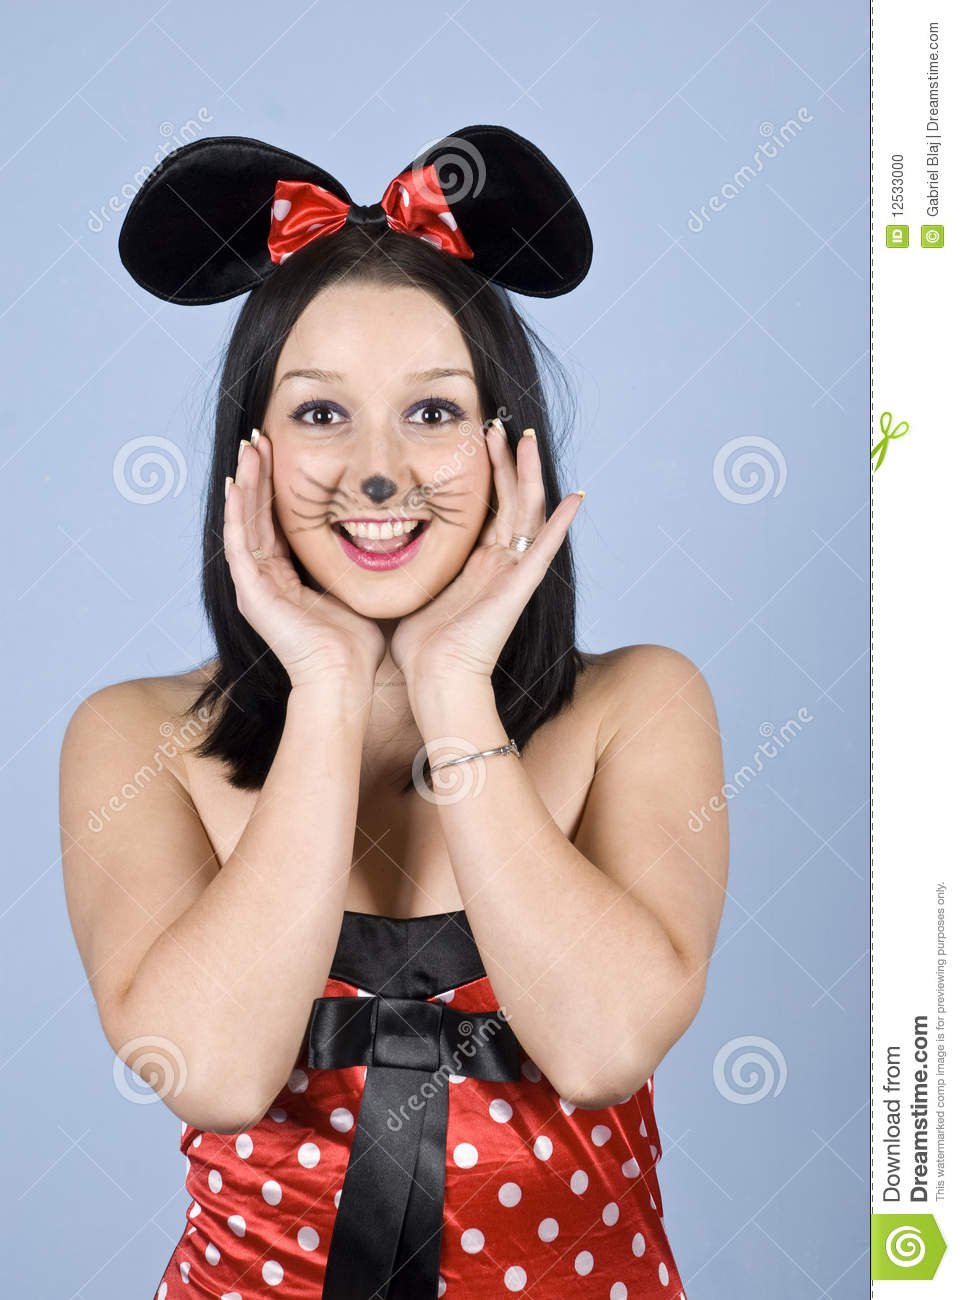 Happy girl with mouse costume and makeup holding hands to face and say:Hello!